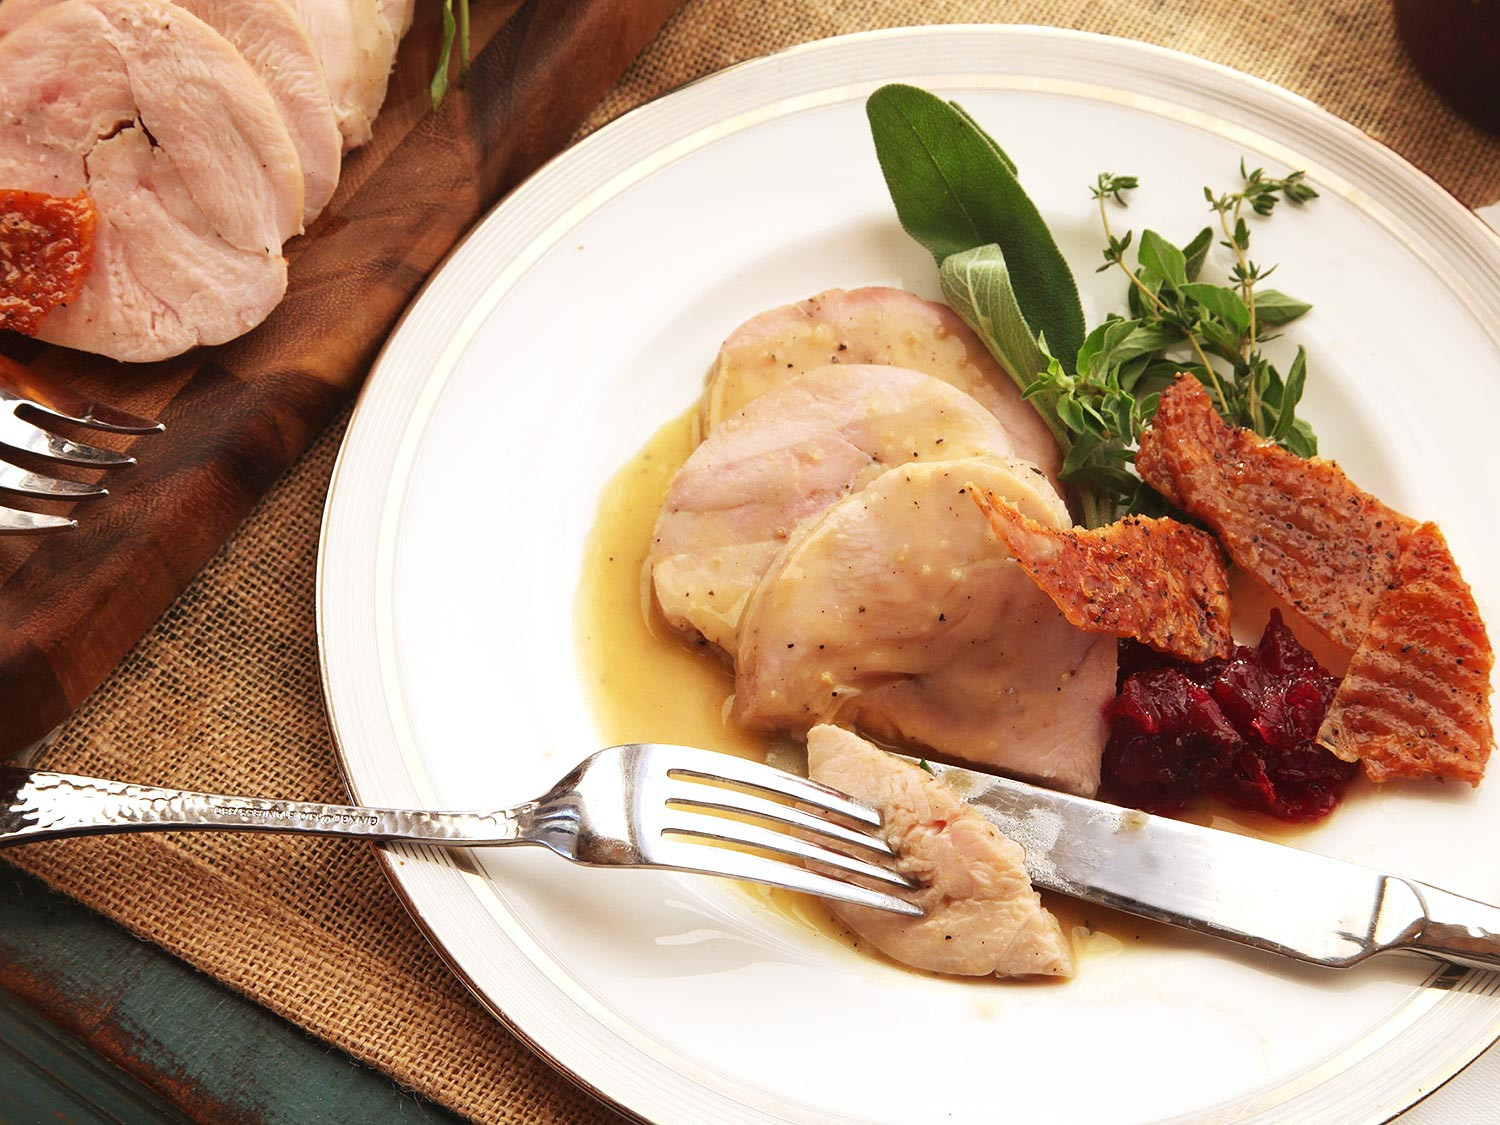 Sous Vide Thanksgiving Turkey  The Food Lab How to Cook Sous Vide Turkey Breast With